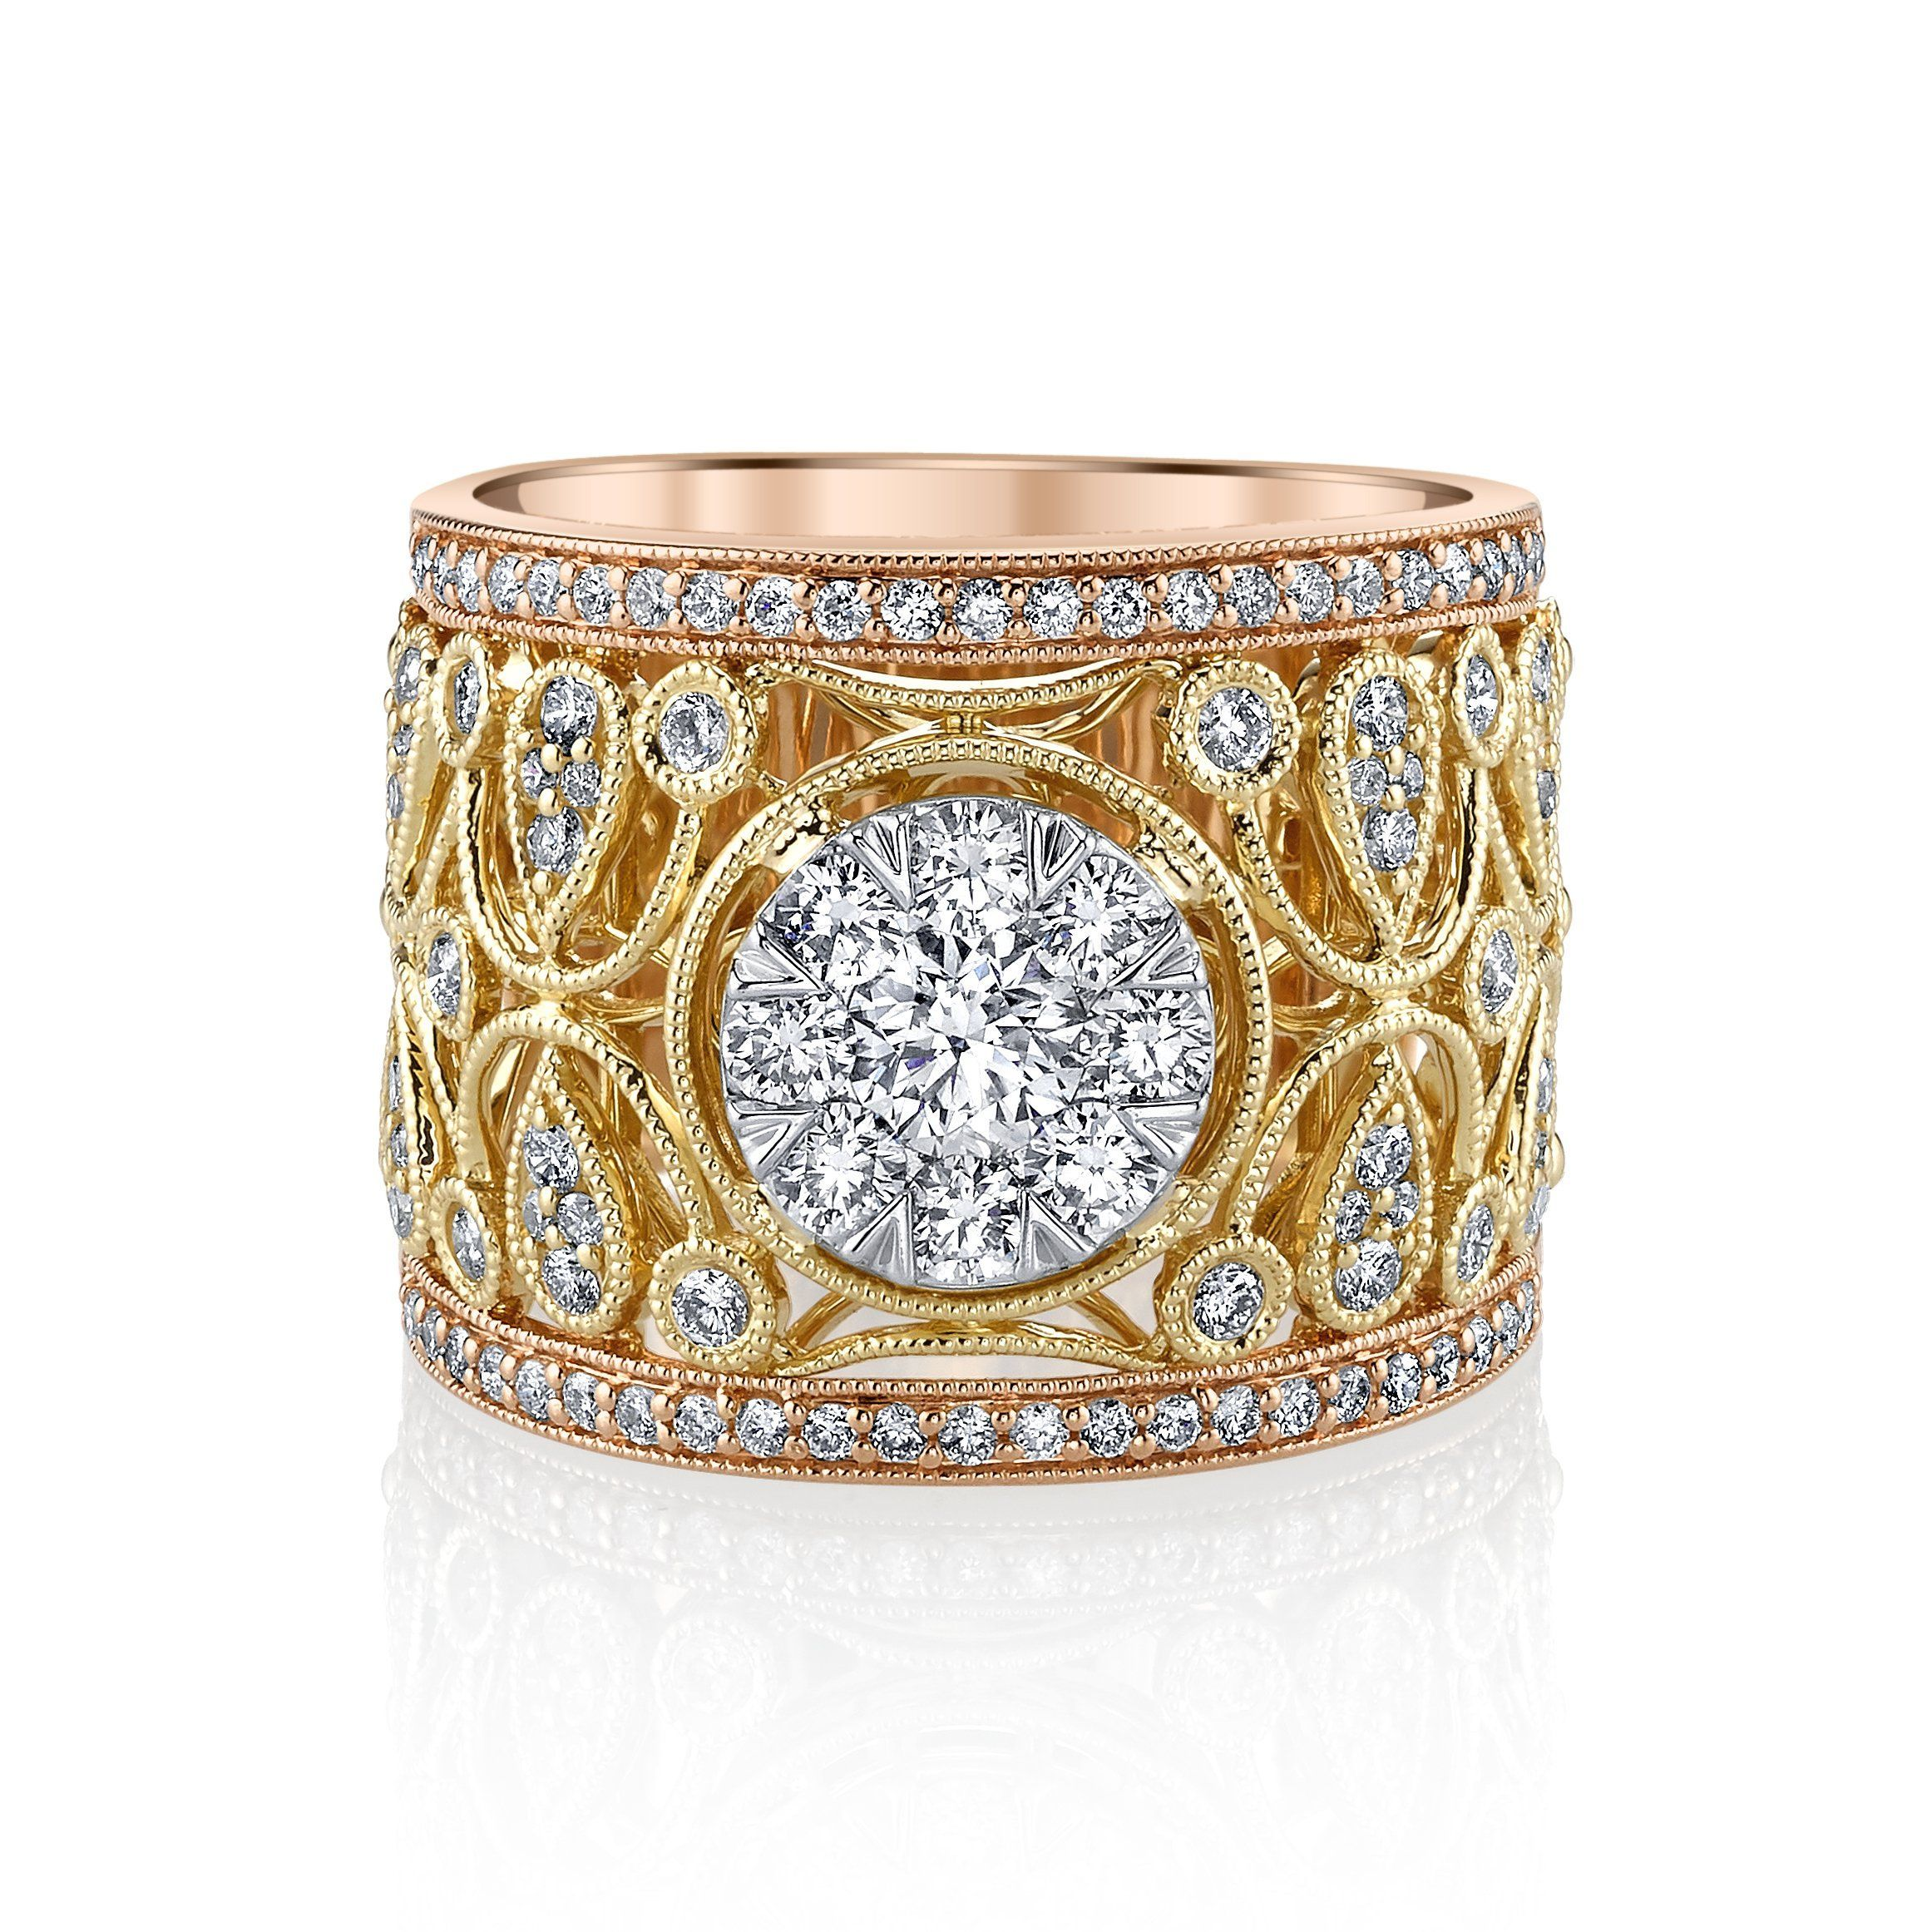 new karl lagerfeld ring diamond at a s first jewellery weddings look article designs rings vogue engagement